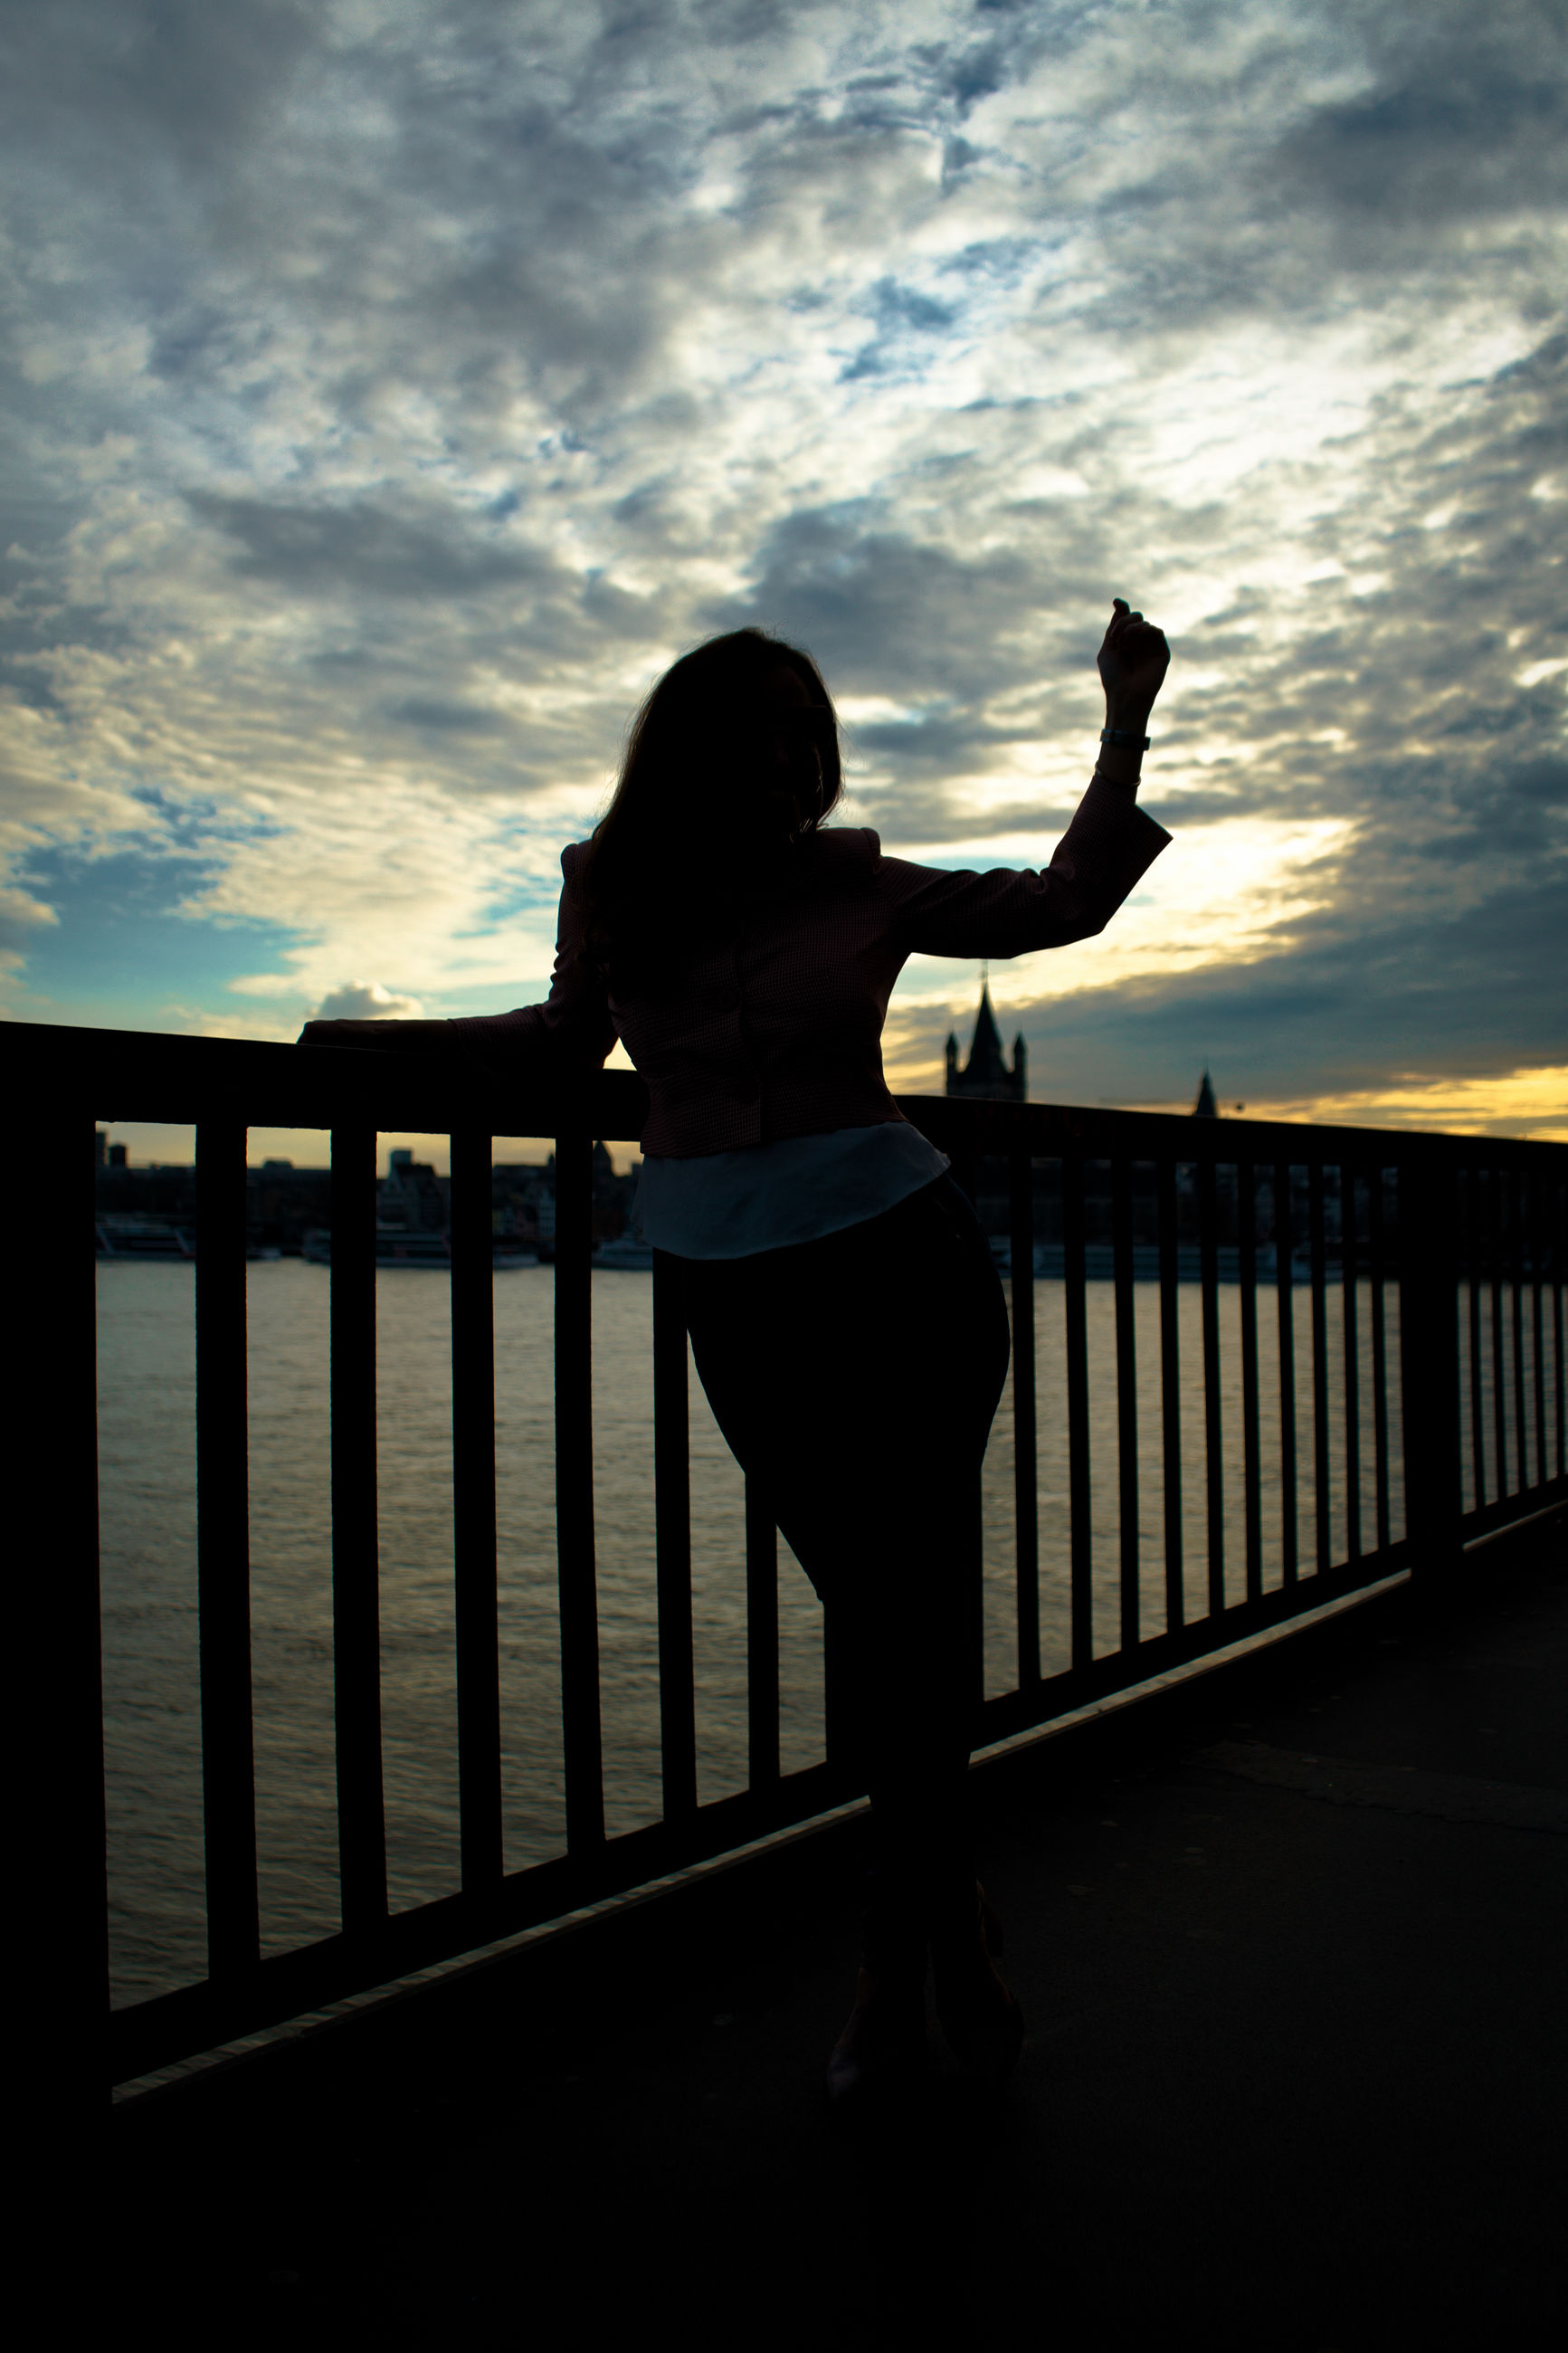 sky, railing, cloud - sky, standing, sunset, silhouette, real people, one person, lifestyles, nature, architecture, leisure activity, water, sea, scenics - nature, full length, built structure, beauty in nature, human arm, outdoors, arms raised, leg